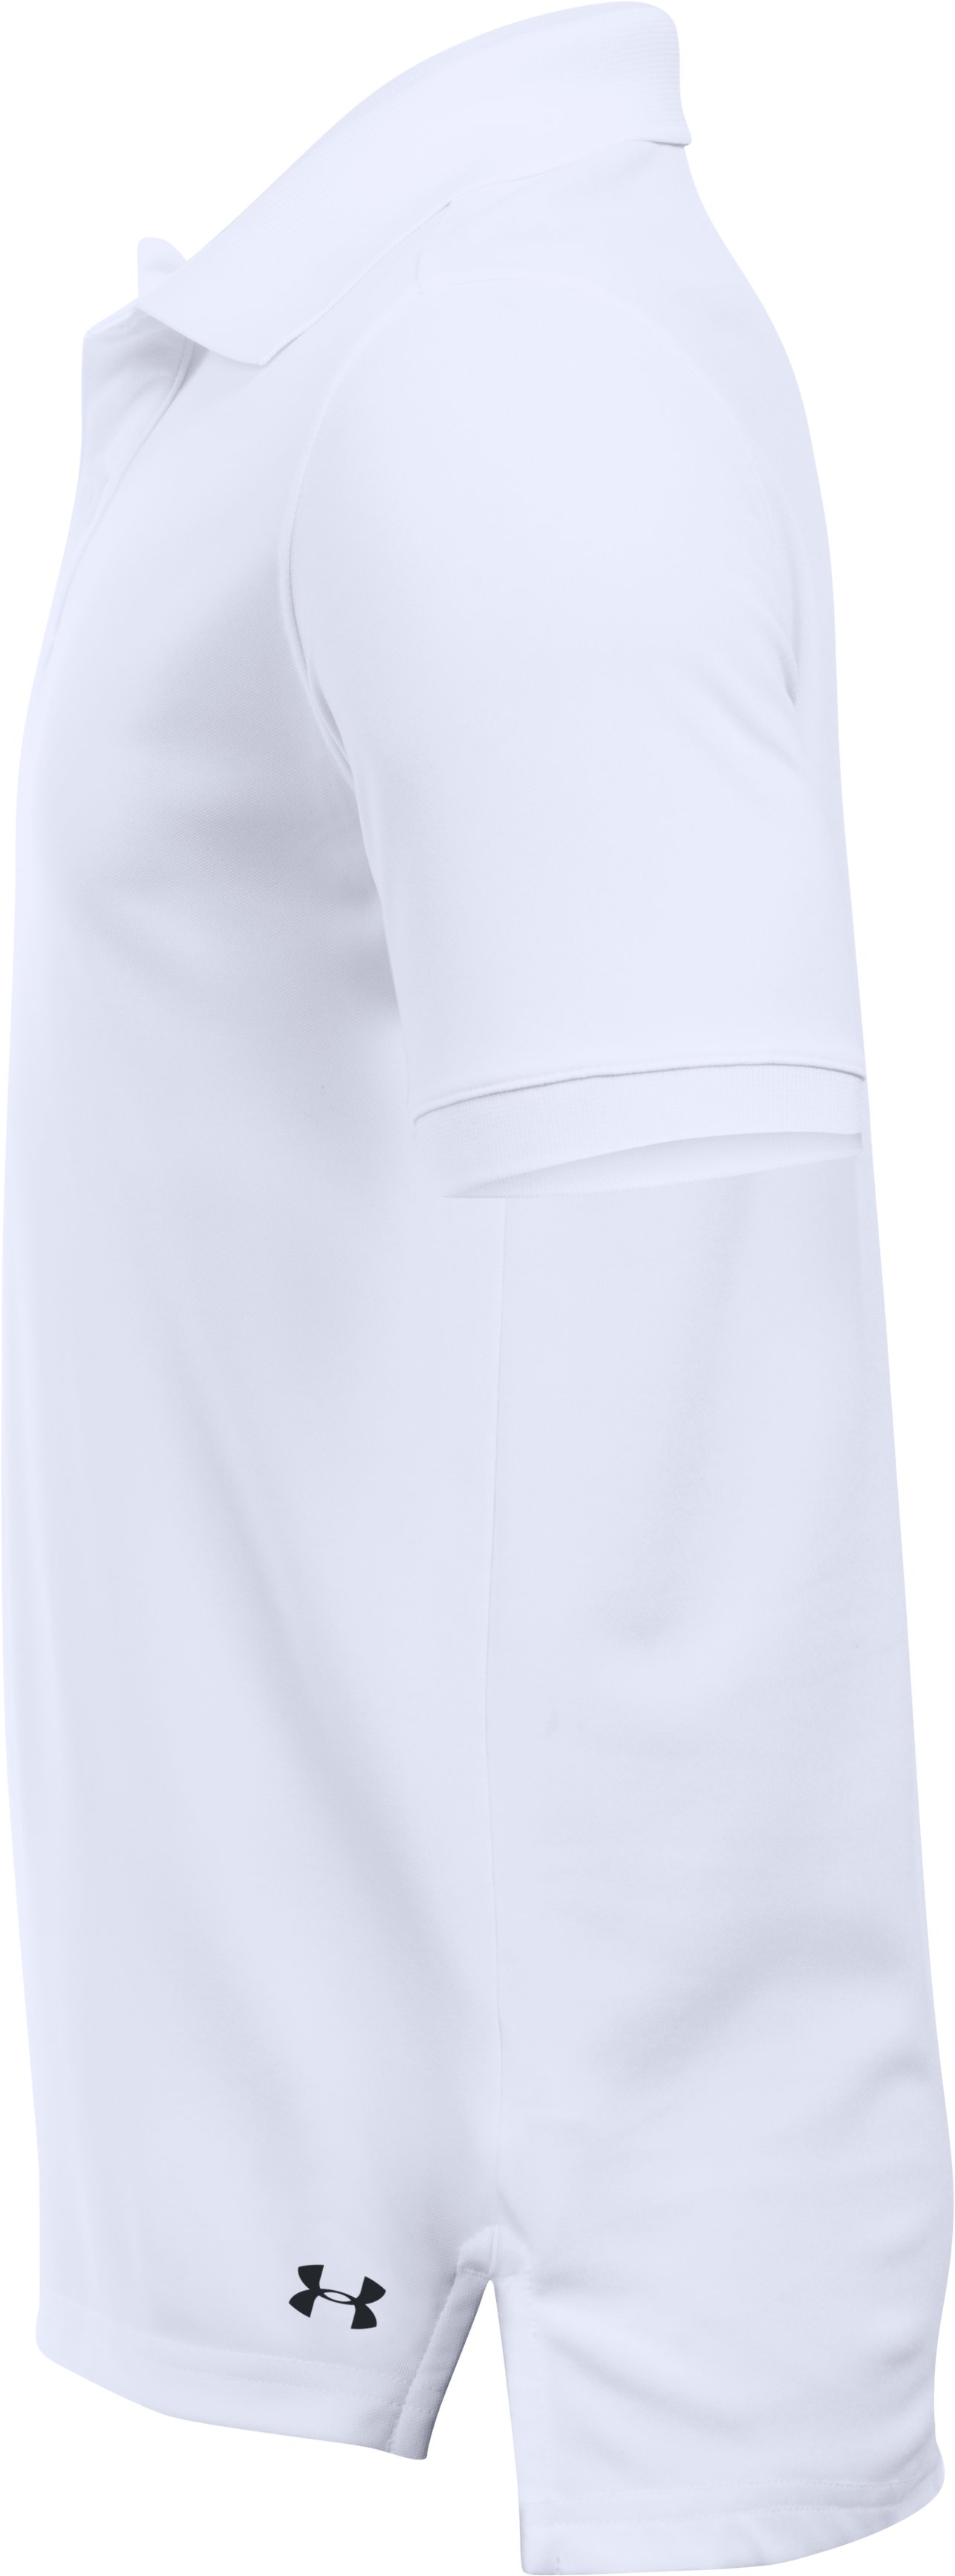 UA Uniform Short Sleeve Polo – Pre-School, White,